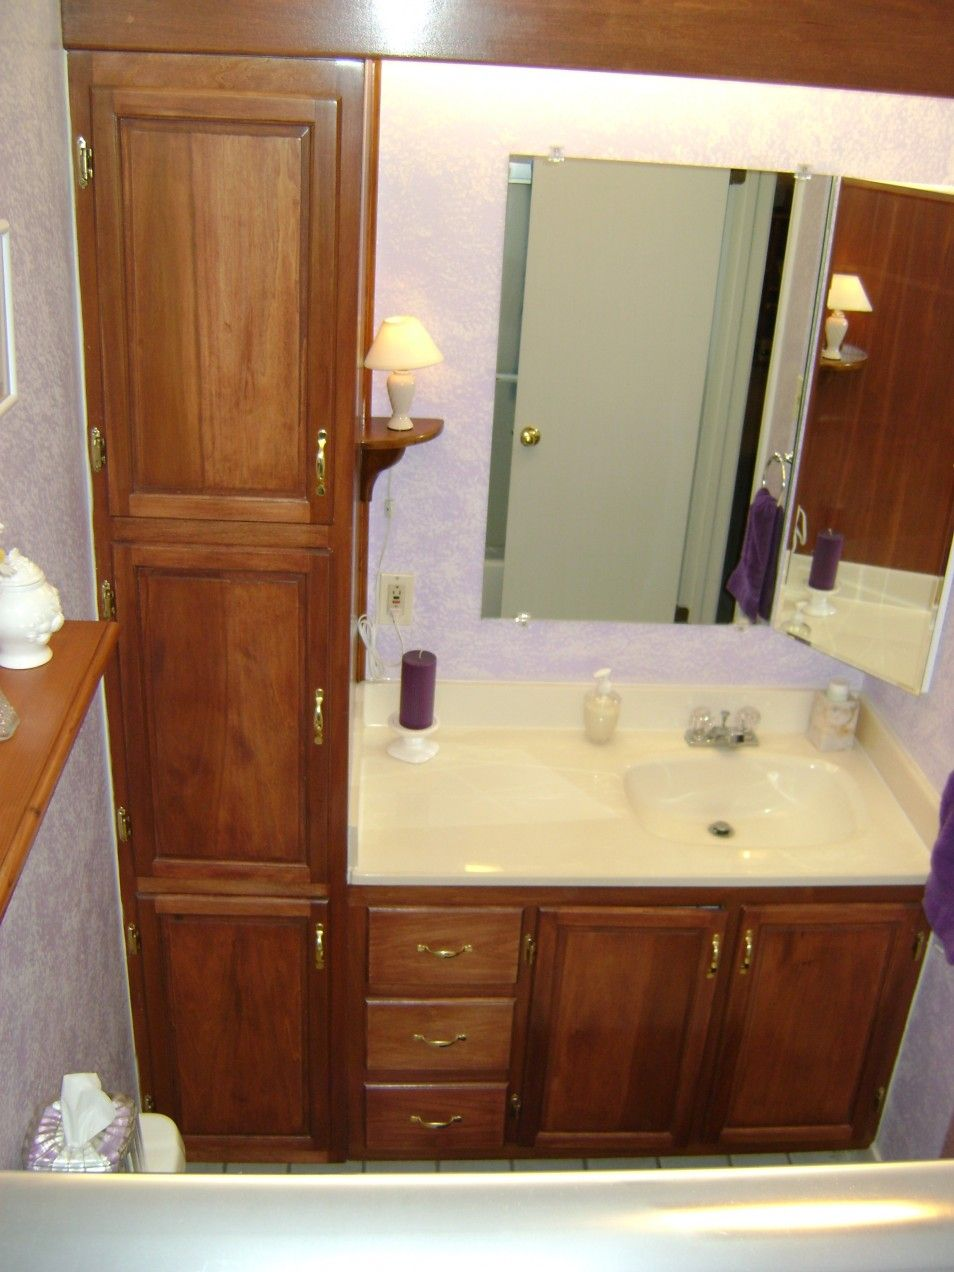 Bathroom Cabinets Linen Storage bathroom cabinet storage ideas for a neater home bathroom linen